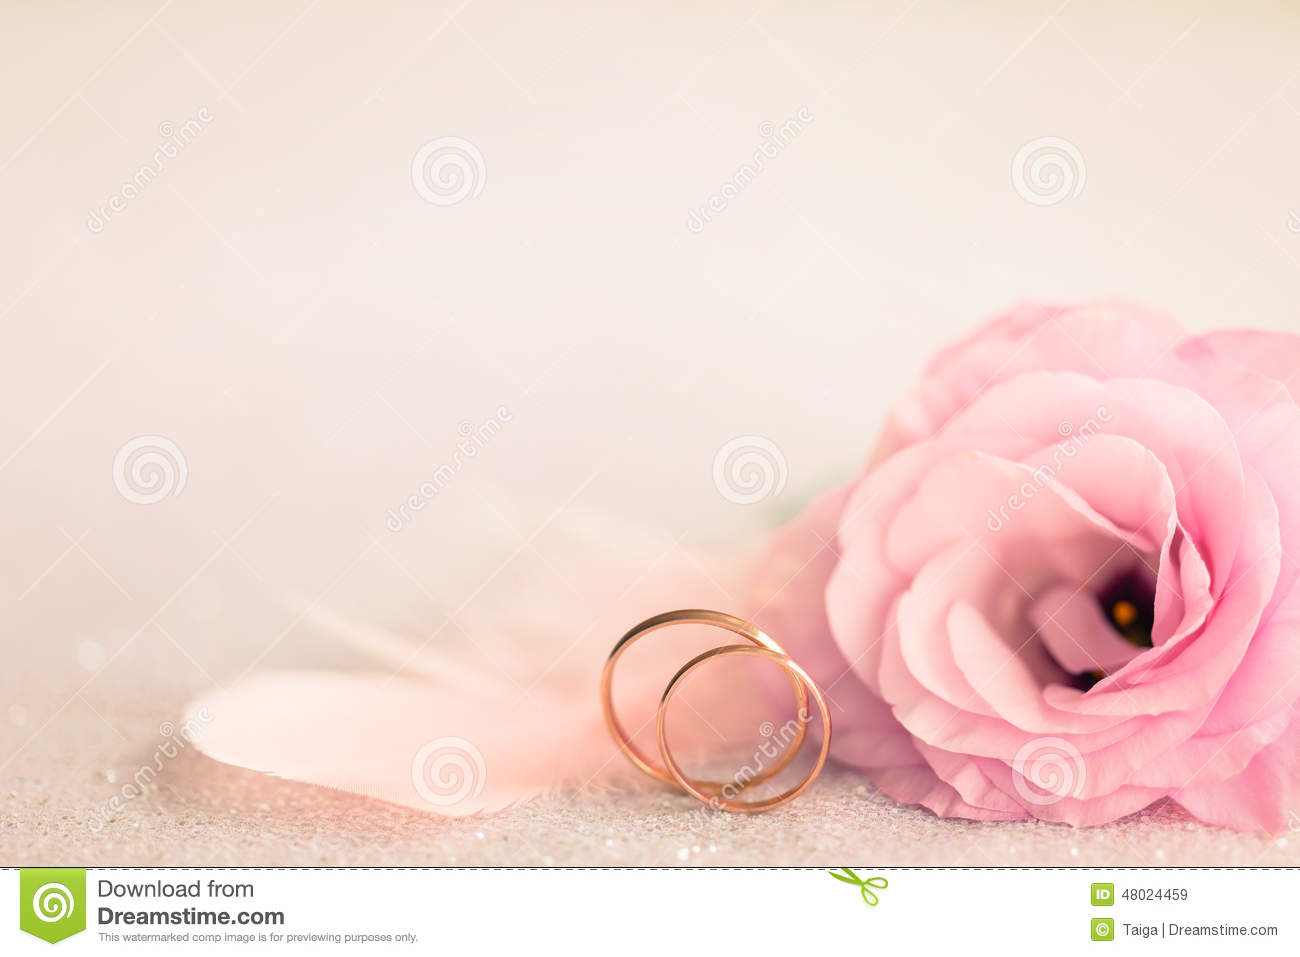 Wedding Stock Photos - 834,828 Images